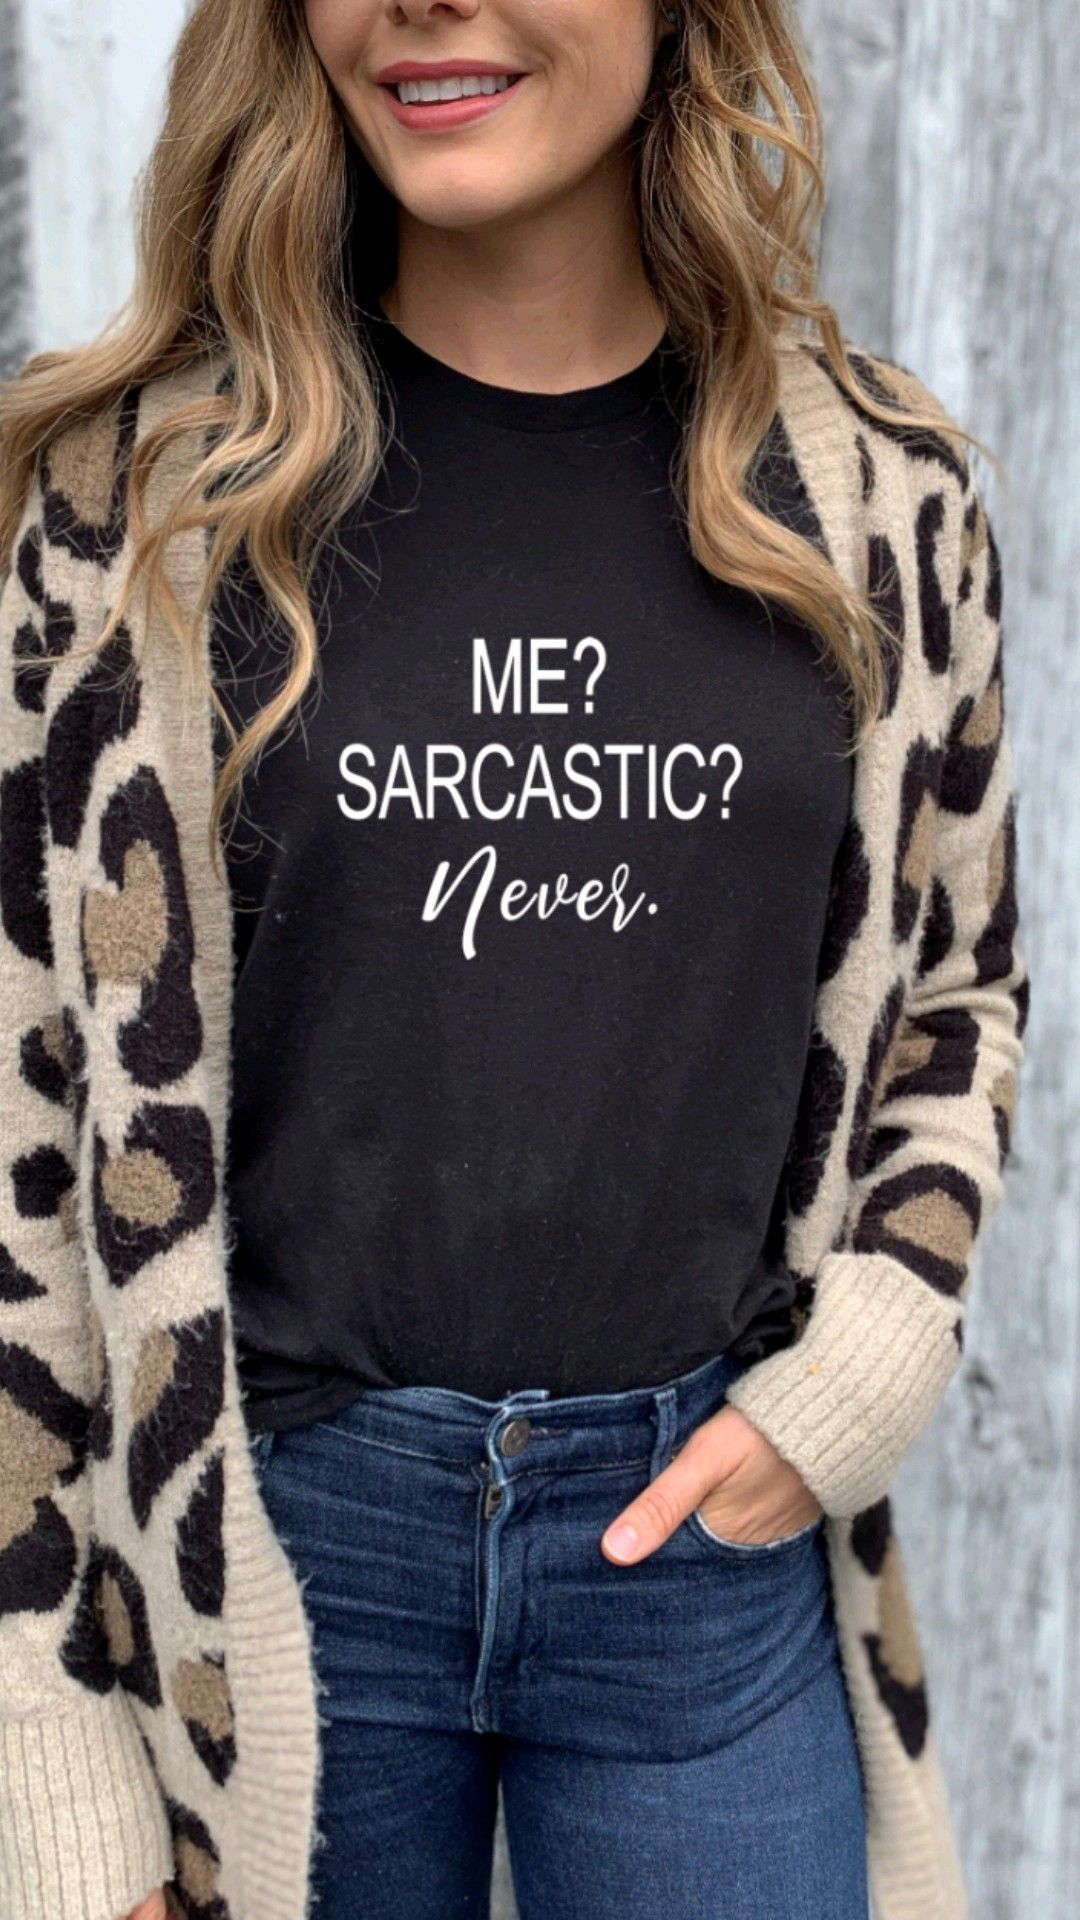 Funny tshirt sarcastic shirts gift for her